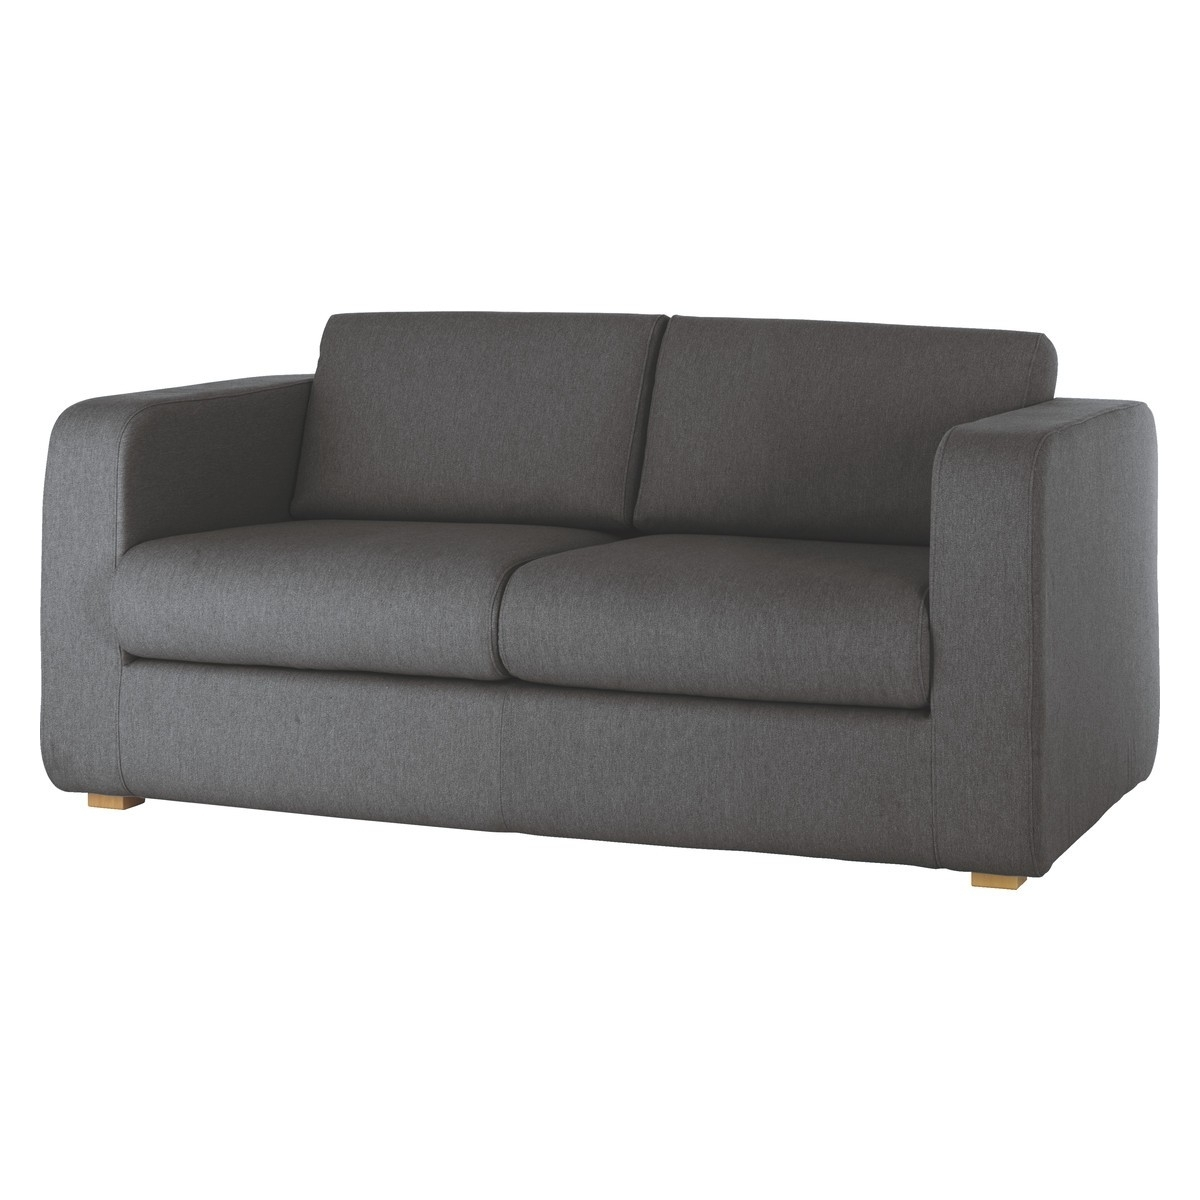 Small 2 Seater Sofas With Most Up To Date Small 2 Seater Sofa Bed – Surferoaxaca (View 12 of 15)